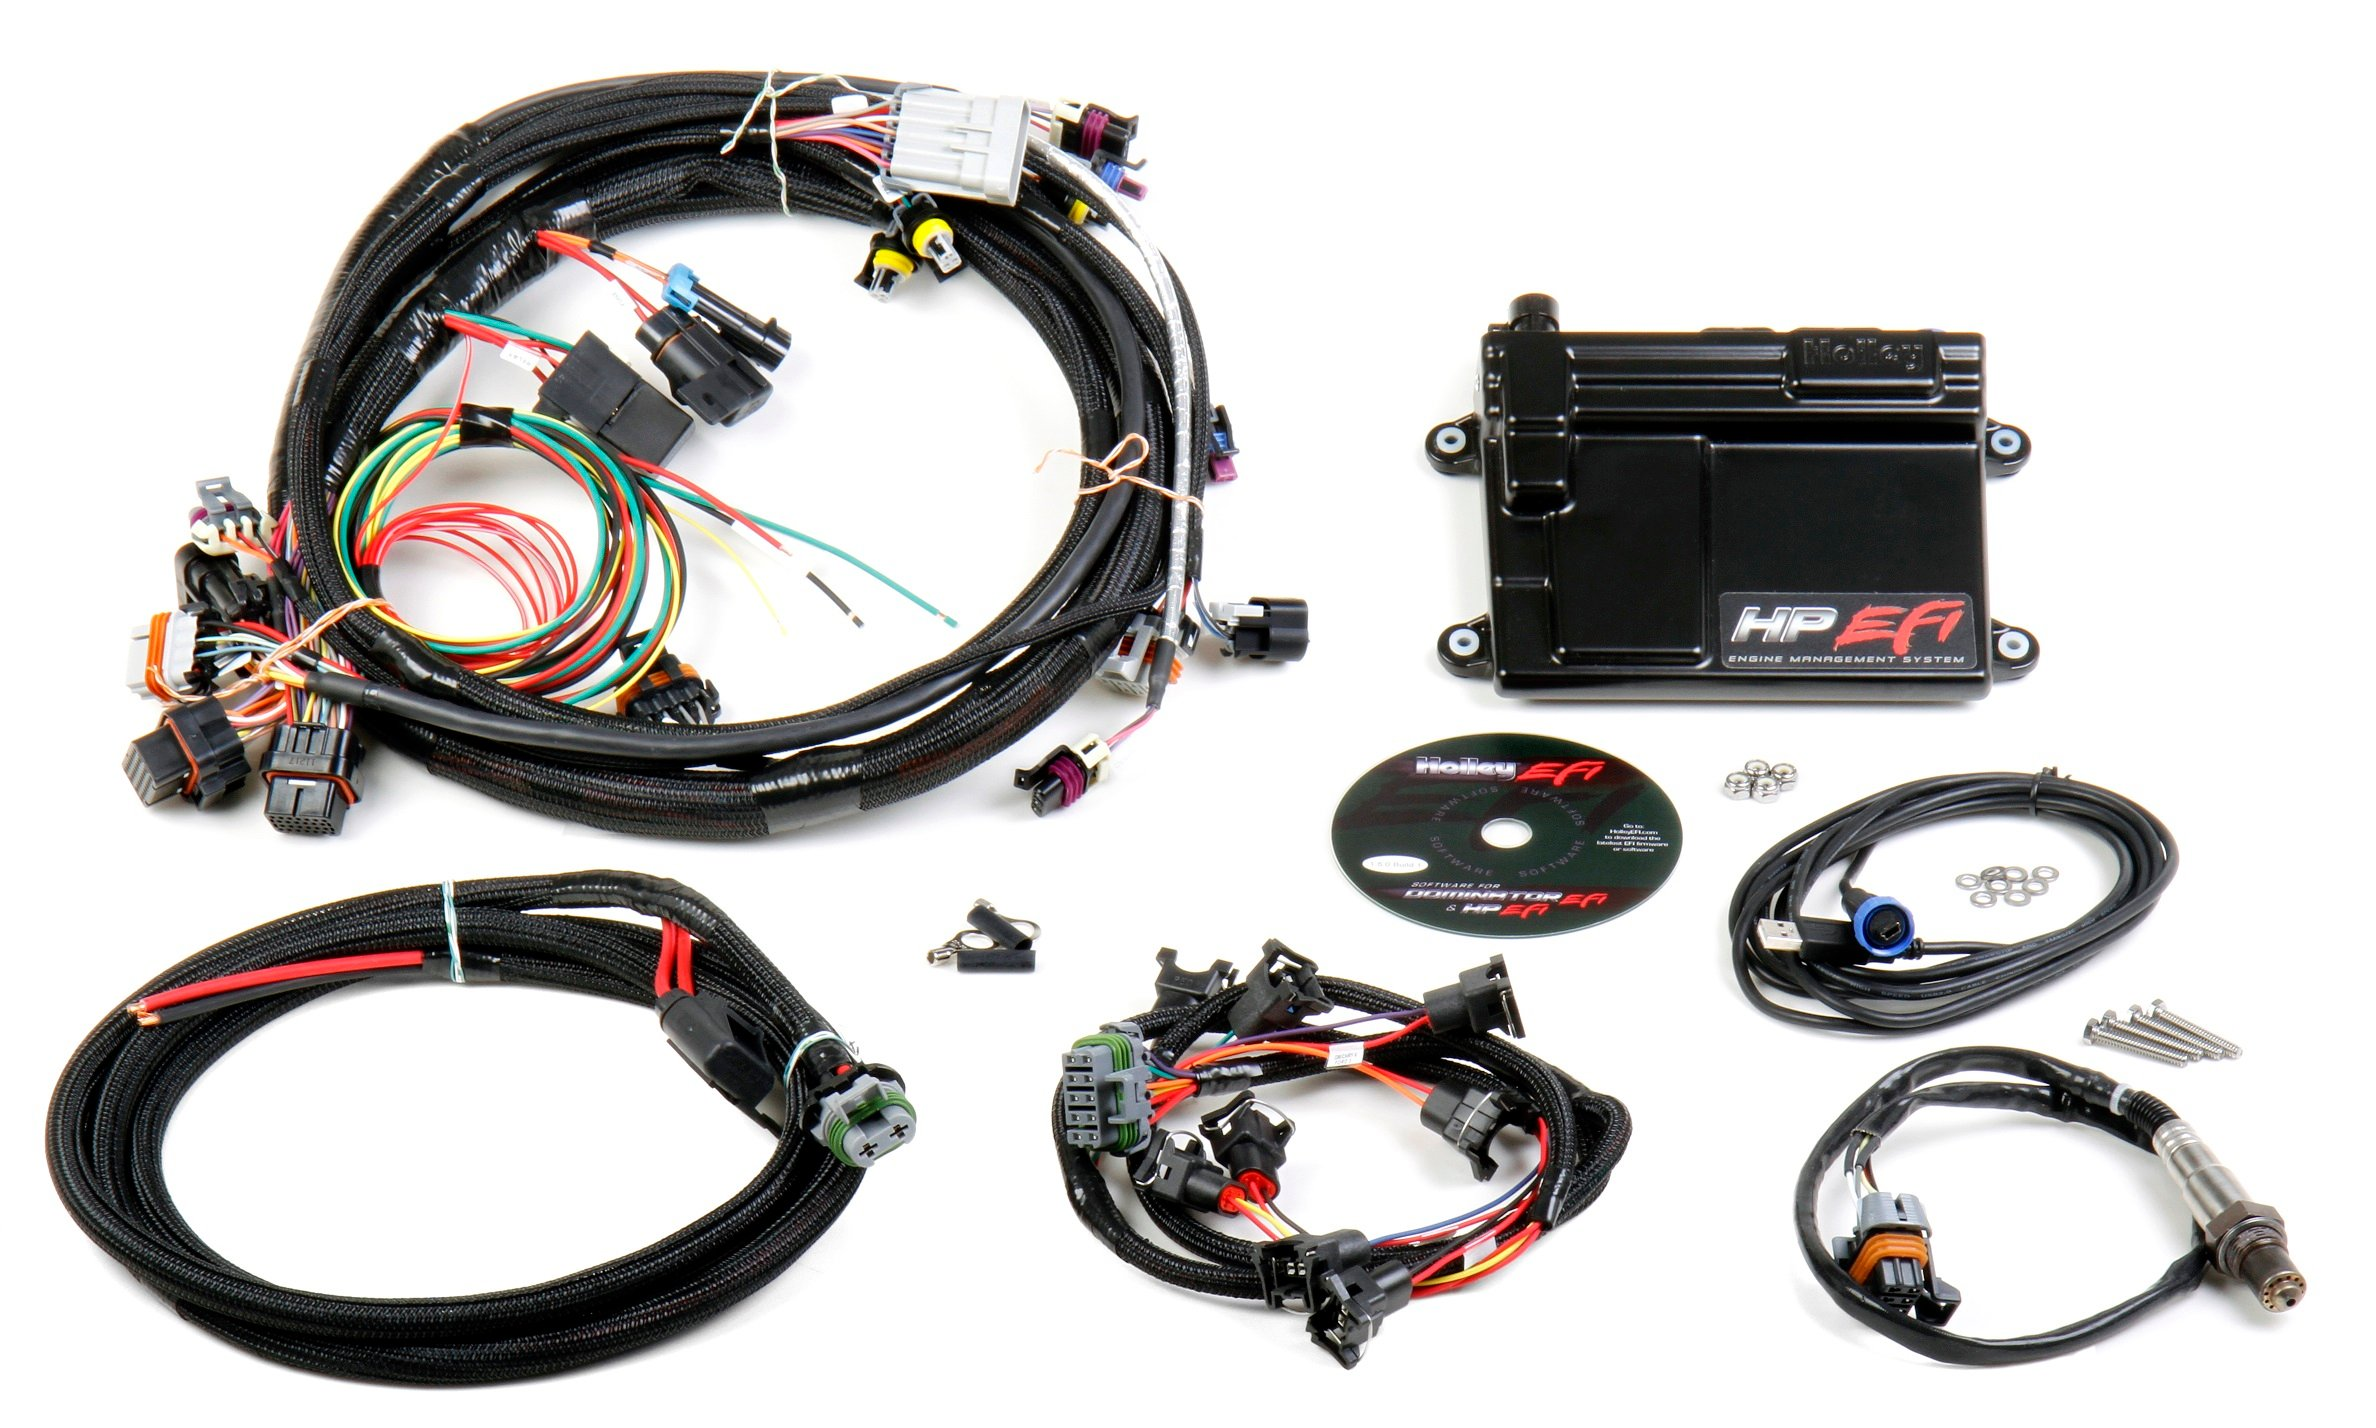 Ls1 Harness Ecm Reinvent Your Wiring Diagram Fuse Box Holley Efi 550 602 Hp Ecu Kits Rh Com Conversion Block